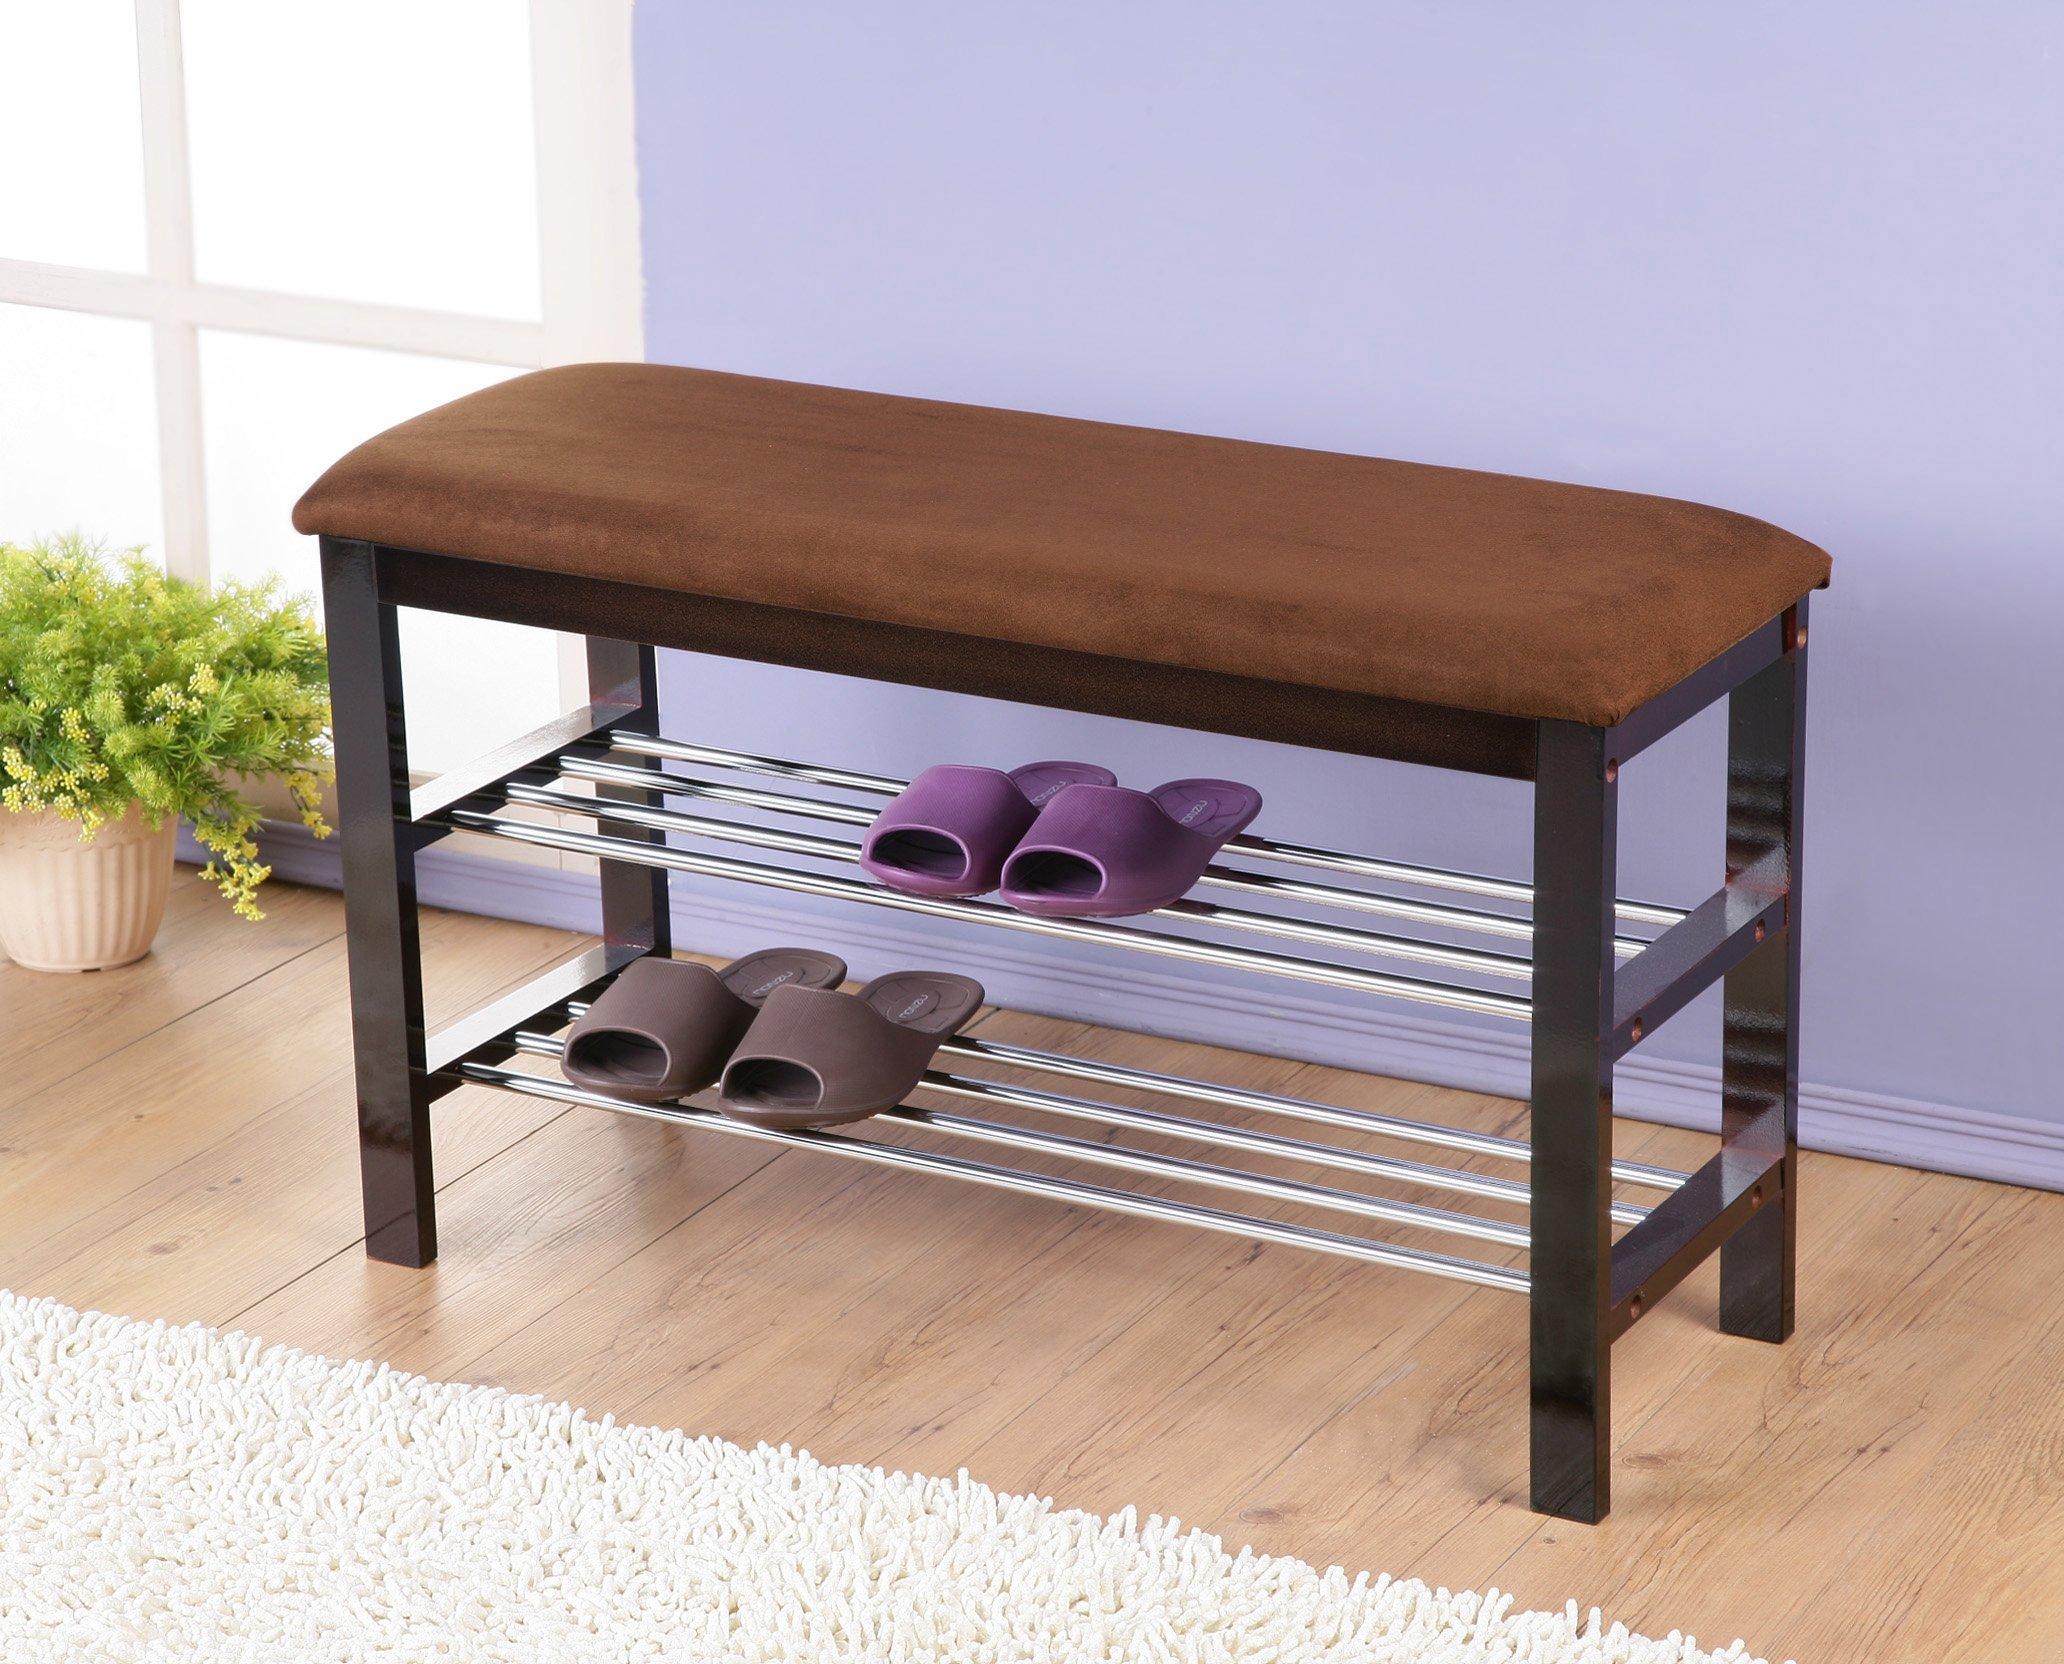 Roundhill Furniture Dark Espresso Wood Shoe Bench with Chocolate Microfiber Seat - Dark Espresso/Chocolate wood shoe rack organizer and hallway Bench Can be used as a shoe organizer, Bedroom and hall Way Bench with microfiber upholstery Seat cover on a wood base Features 2-tier of shoe storage - entryway-furniture-decor, entryway-laundry-room, benches - 81R7oTt35pL -